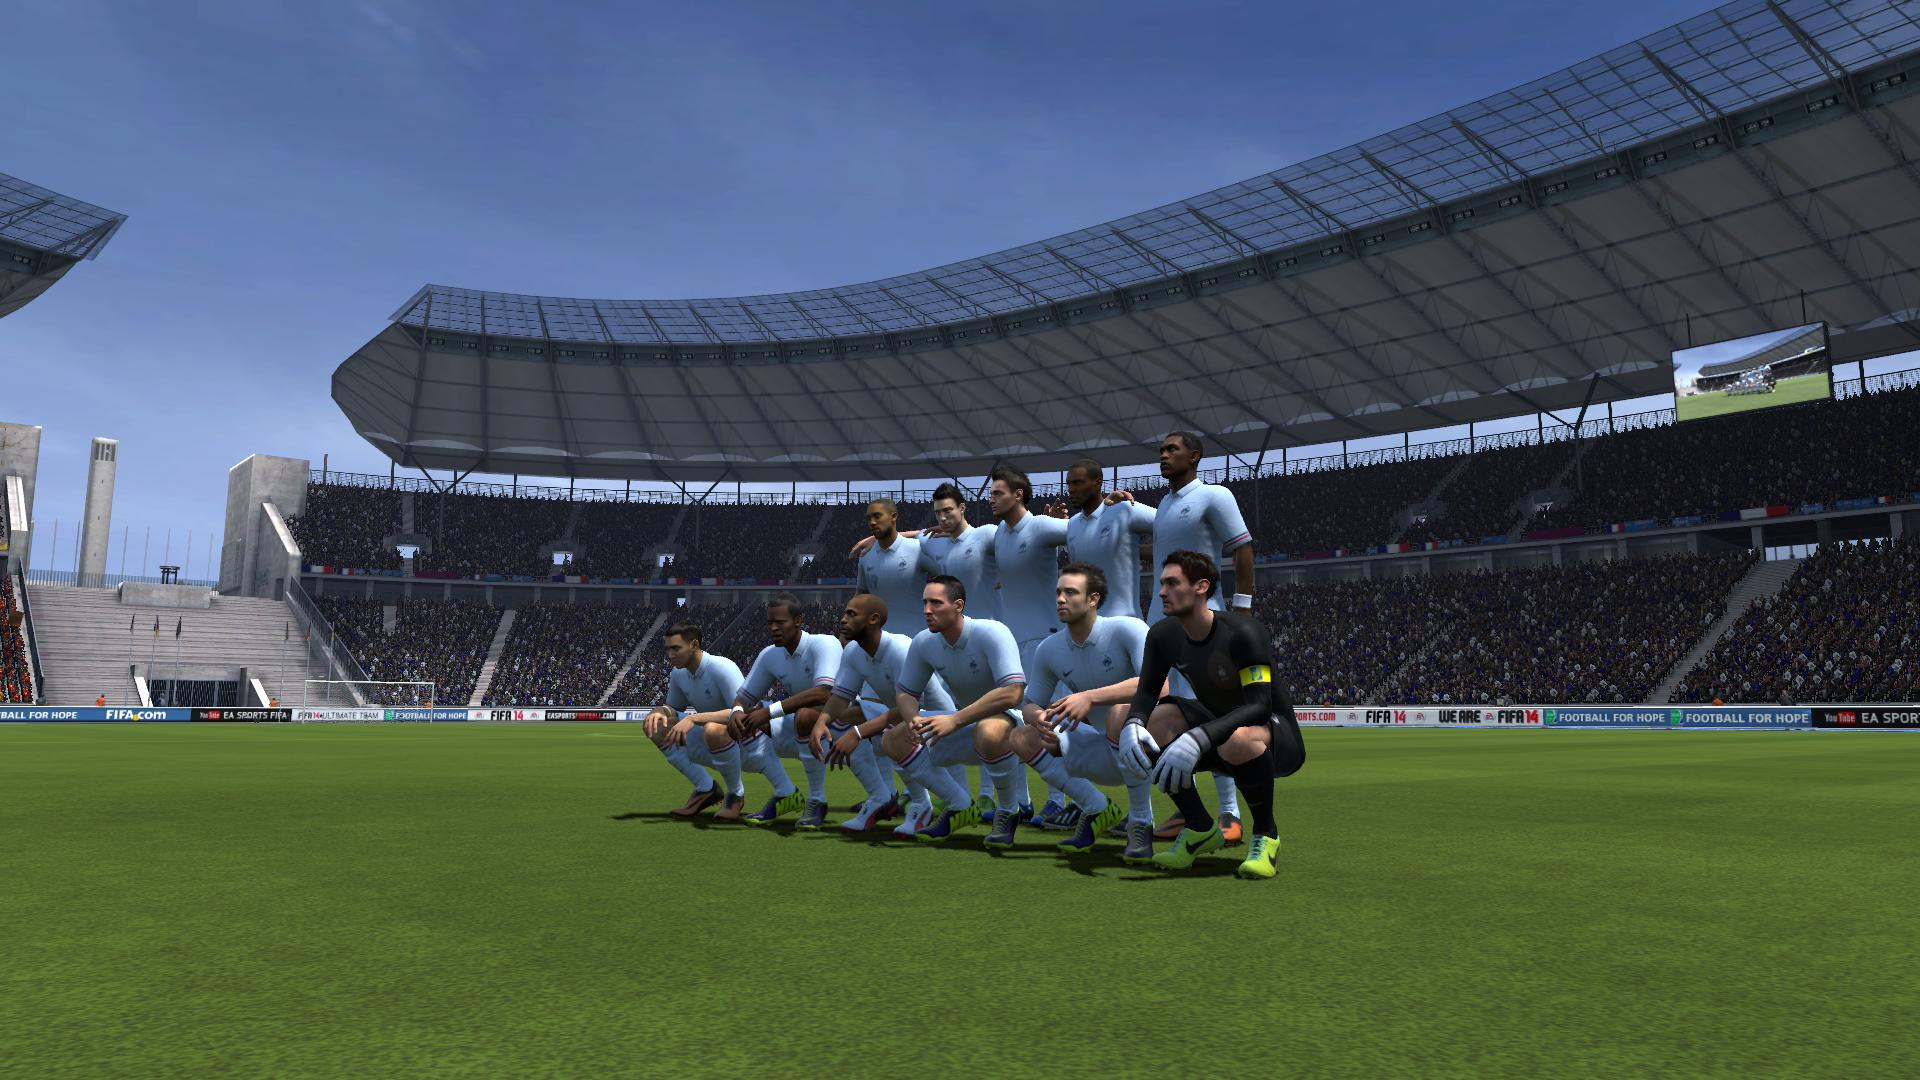 Wallpapers, fond d'ecran pour FIFA 14 PC, 3DS, Wii, PS3, PSP, Xbox 360, PS2, PSvita, Android ...